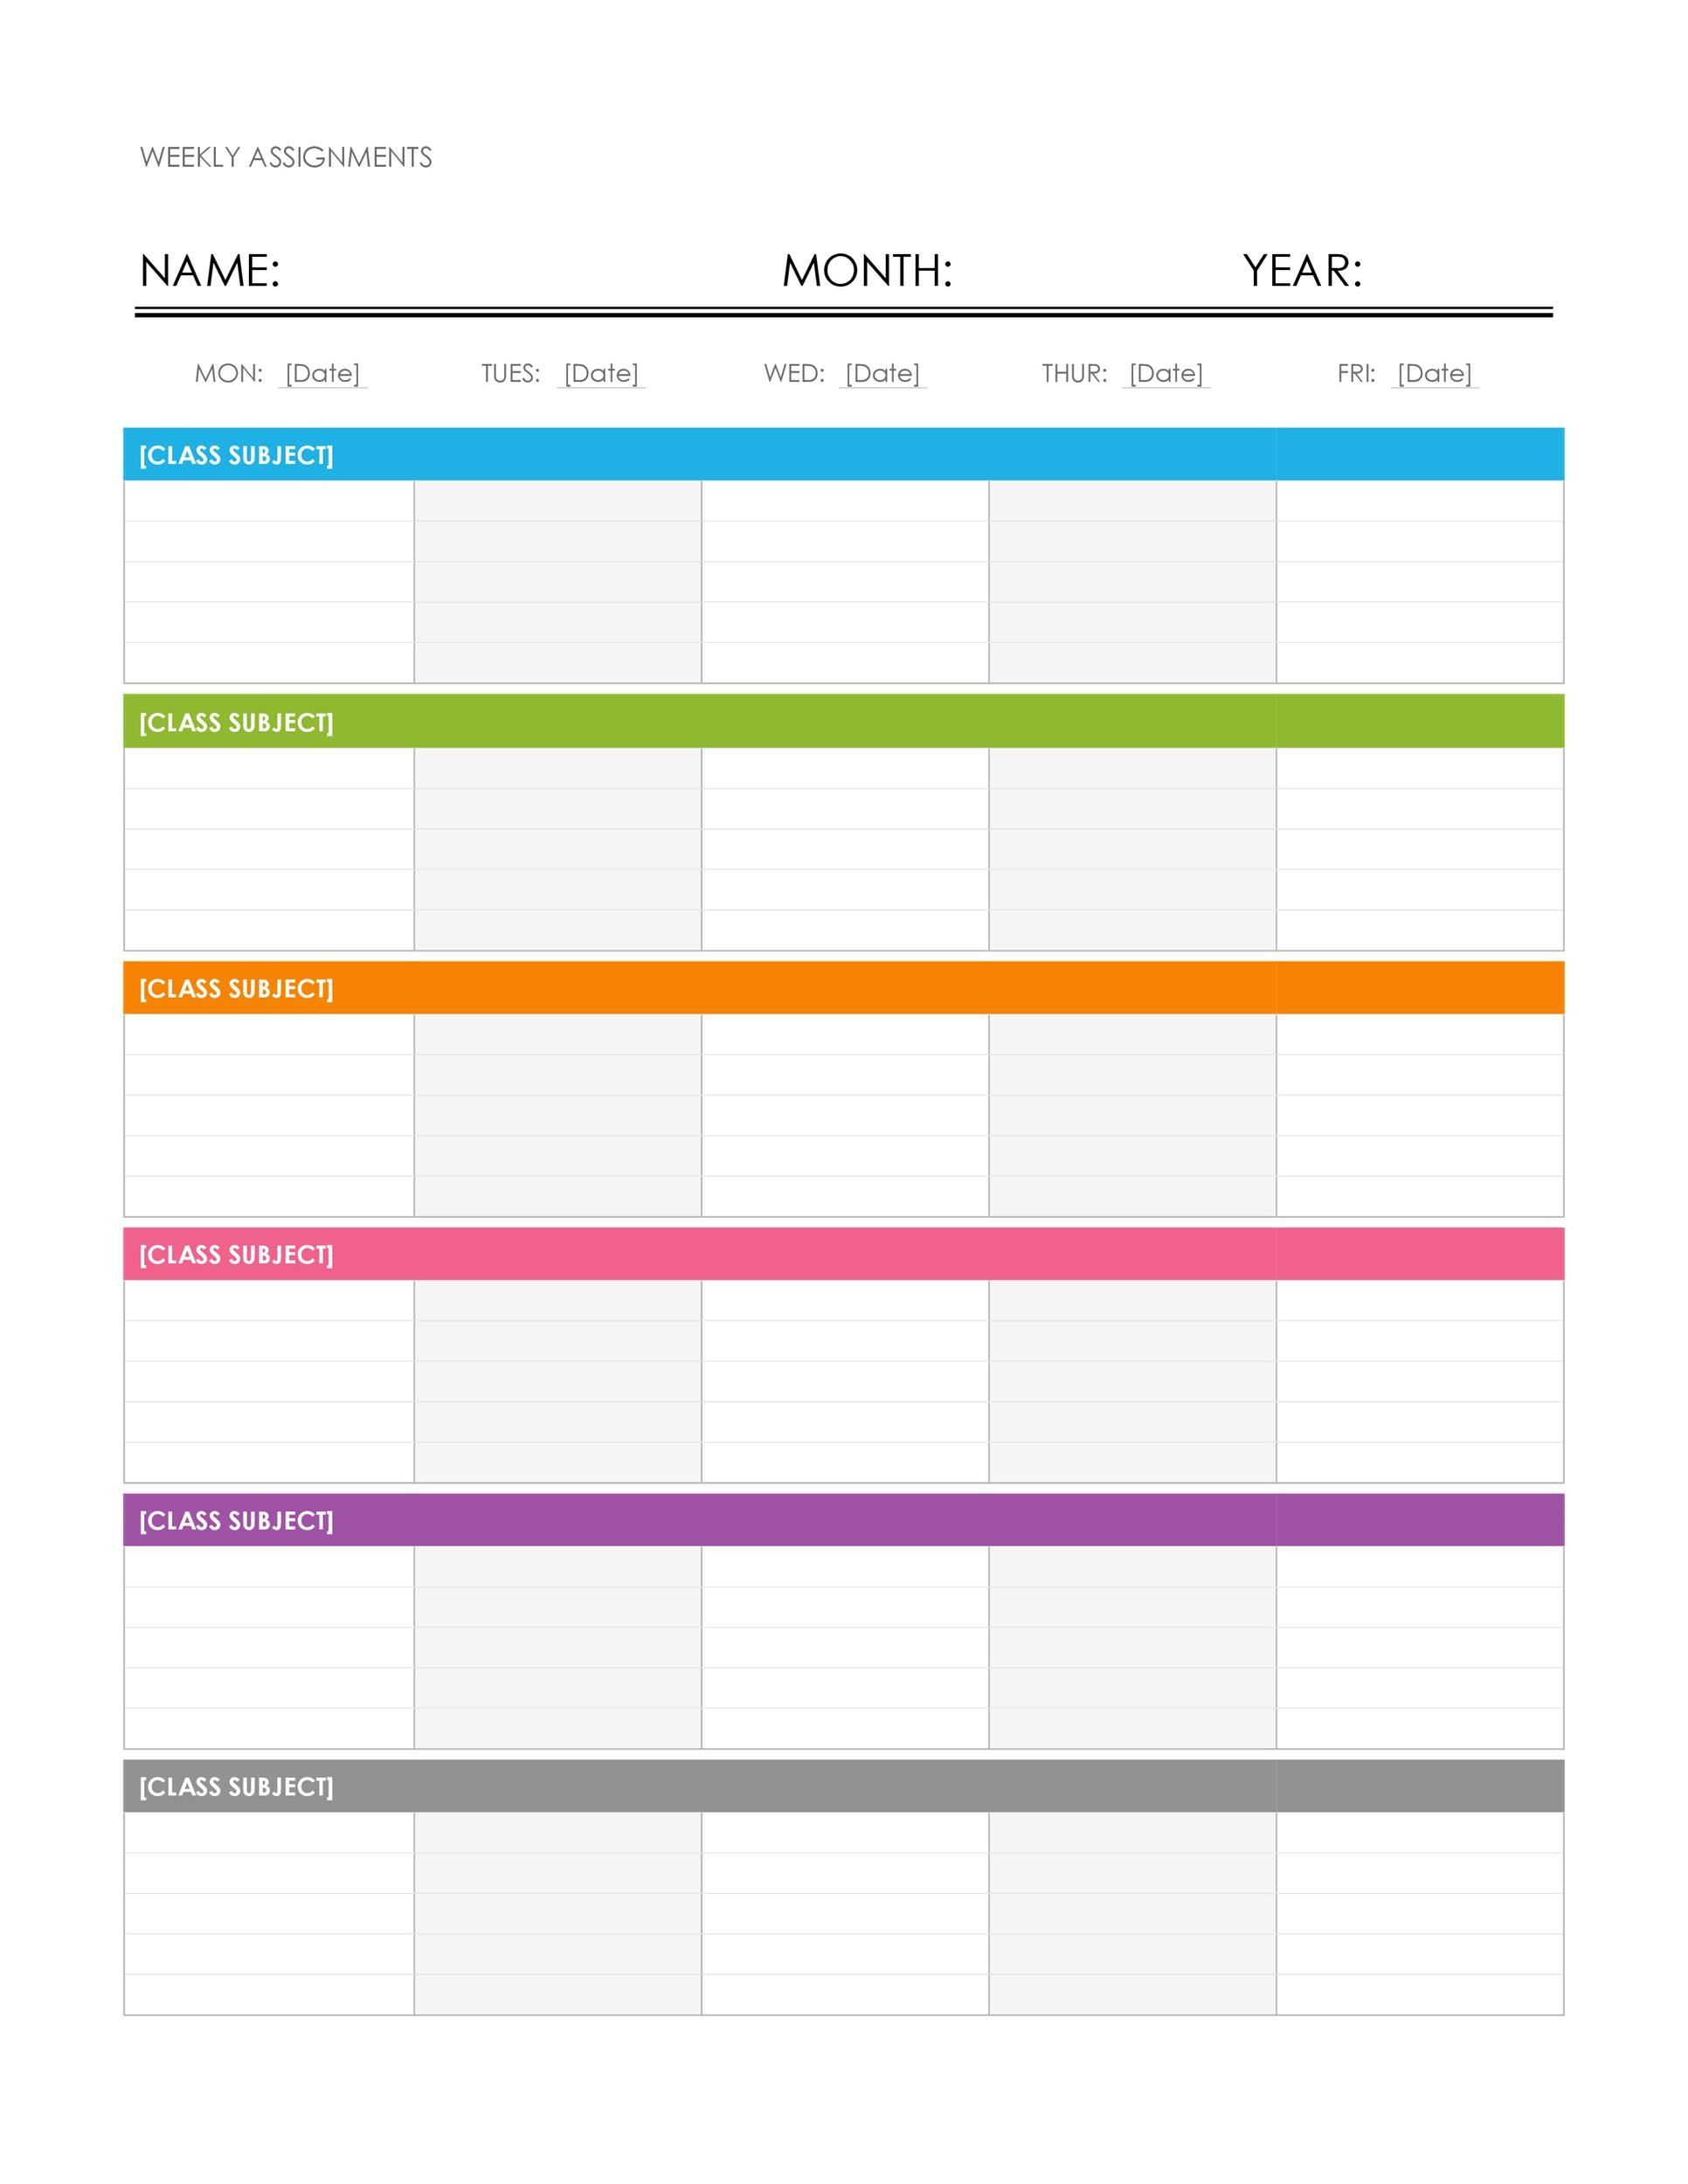 picture about Blank Weekly Calendar Template called 26 Blank Weekly Calendar Templates [PDF, Excel, Phrase] ᐅ